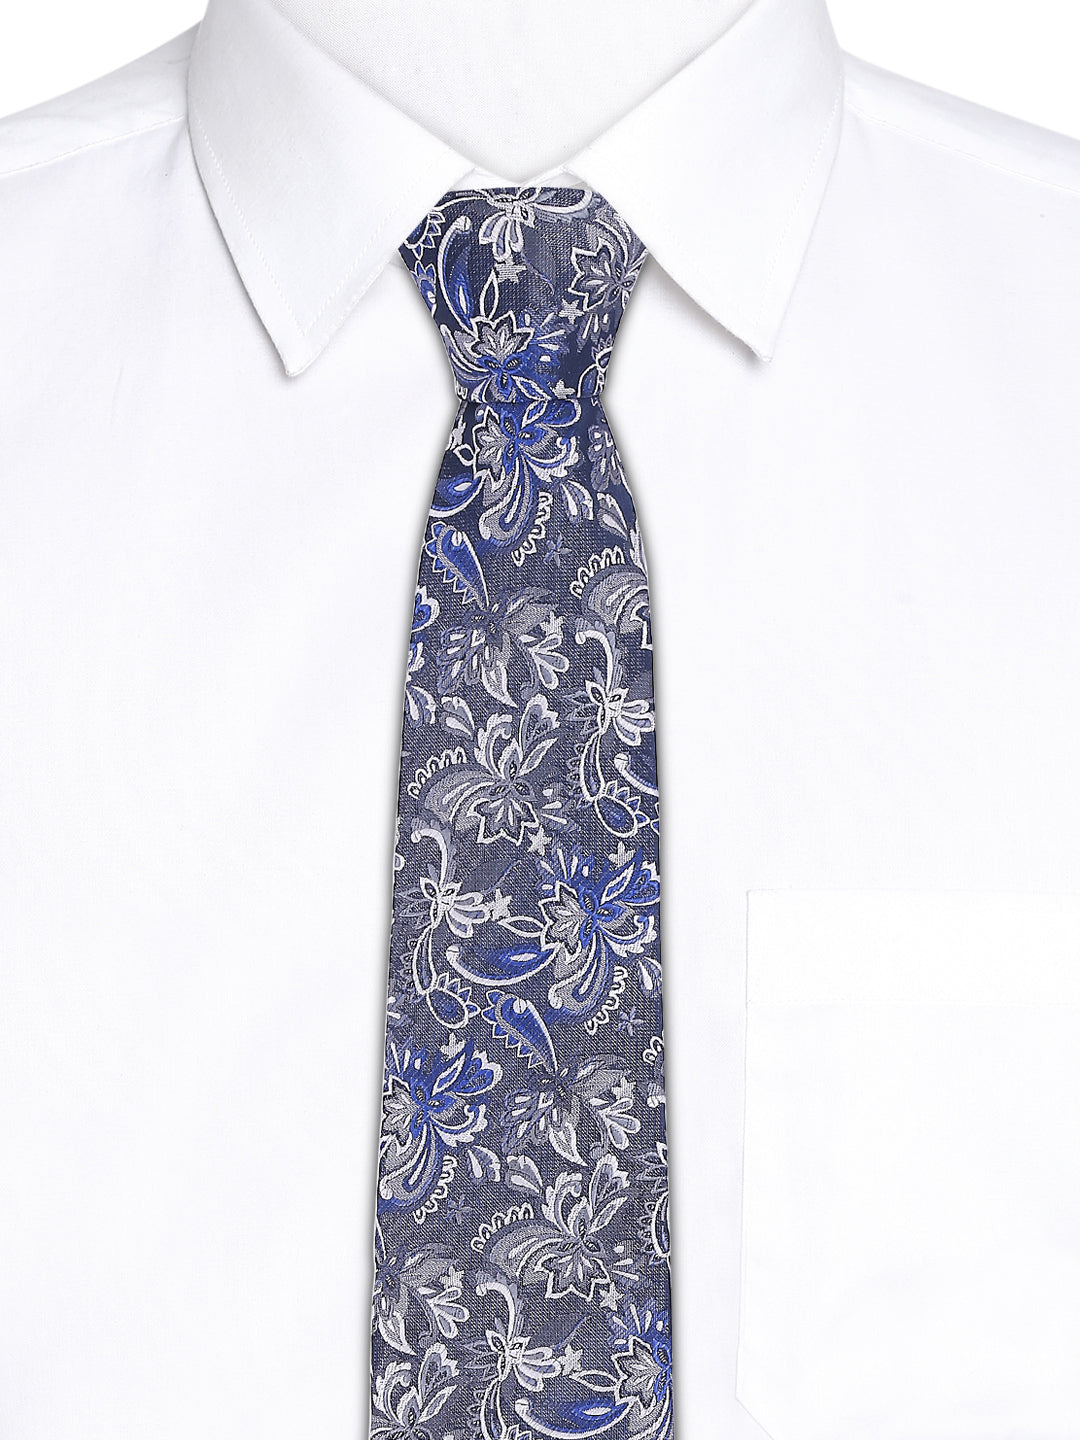 Zido Tie for Men TJQ271